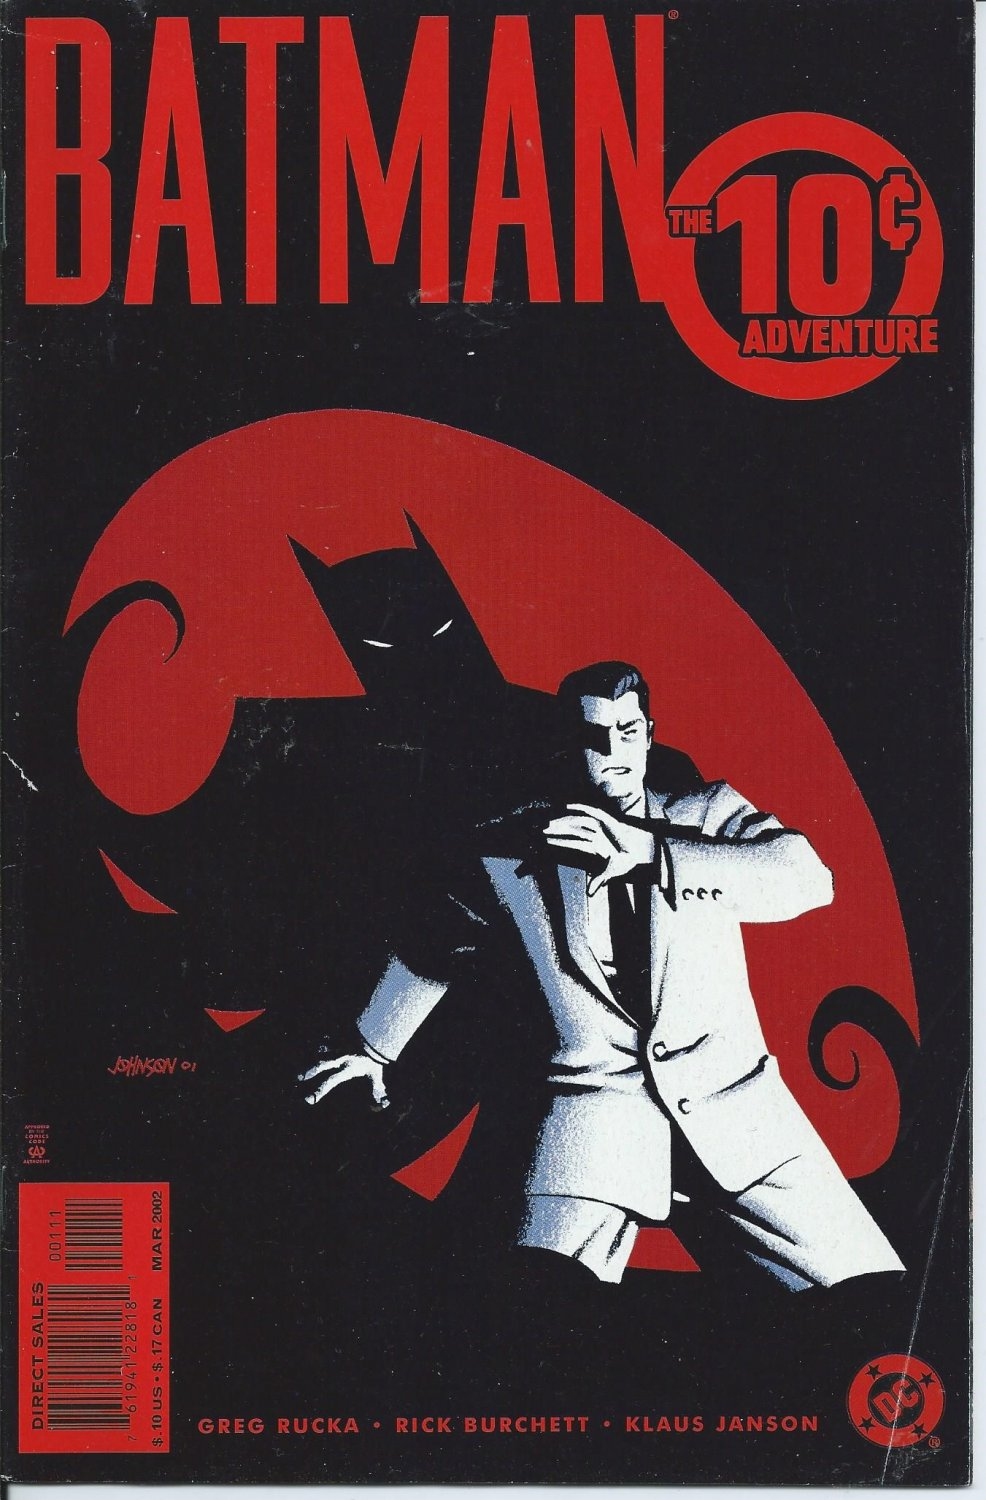 2001 Batman by Greg Rukka, Rick Burchett, Klaus Janson